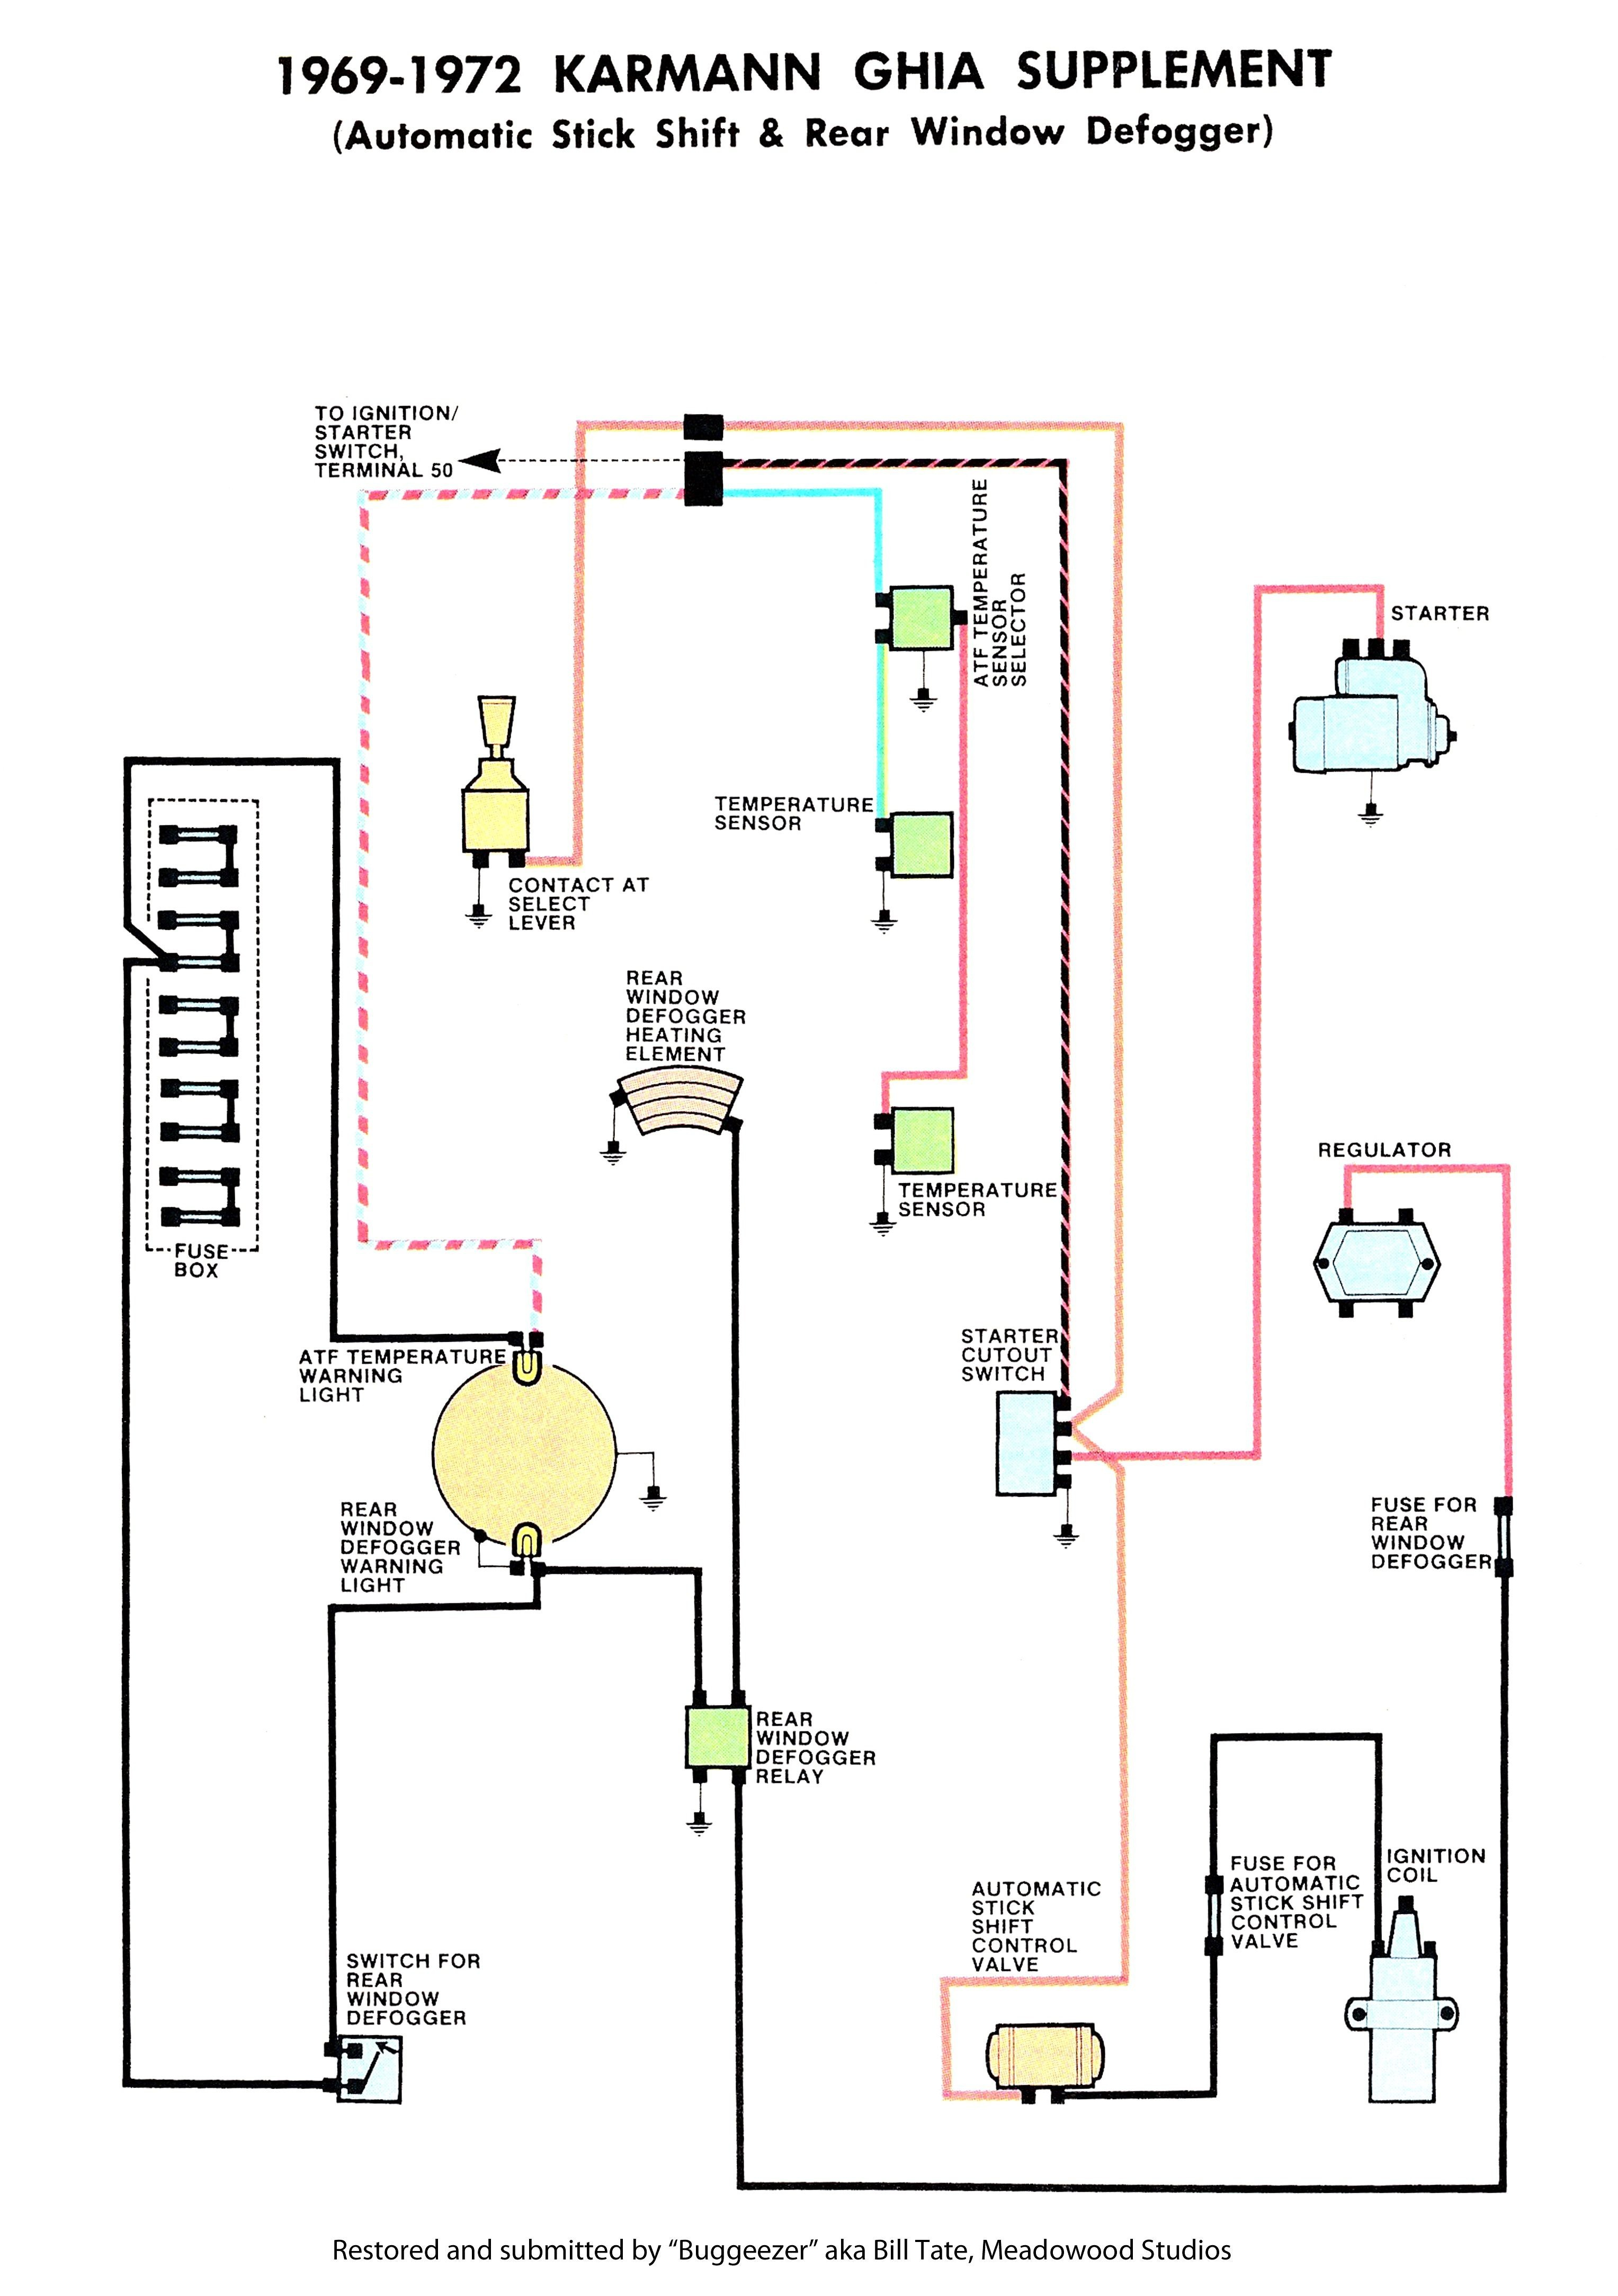 Servo 140 Limit Switch Wiring Diagram - Data Wiring Diagram Blog on limit switch furnace diagram, limit switch circuit diagram, forward reverse motor control diagram, limit switch control diagram, limit switch sensor, limit switch motor diagram, whitfield stoves diagram, limit switch parts, limit switch valve, dc motor control circuit diagram, pellet stove parts diagram, limit switch schematic,